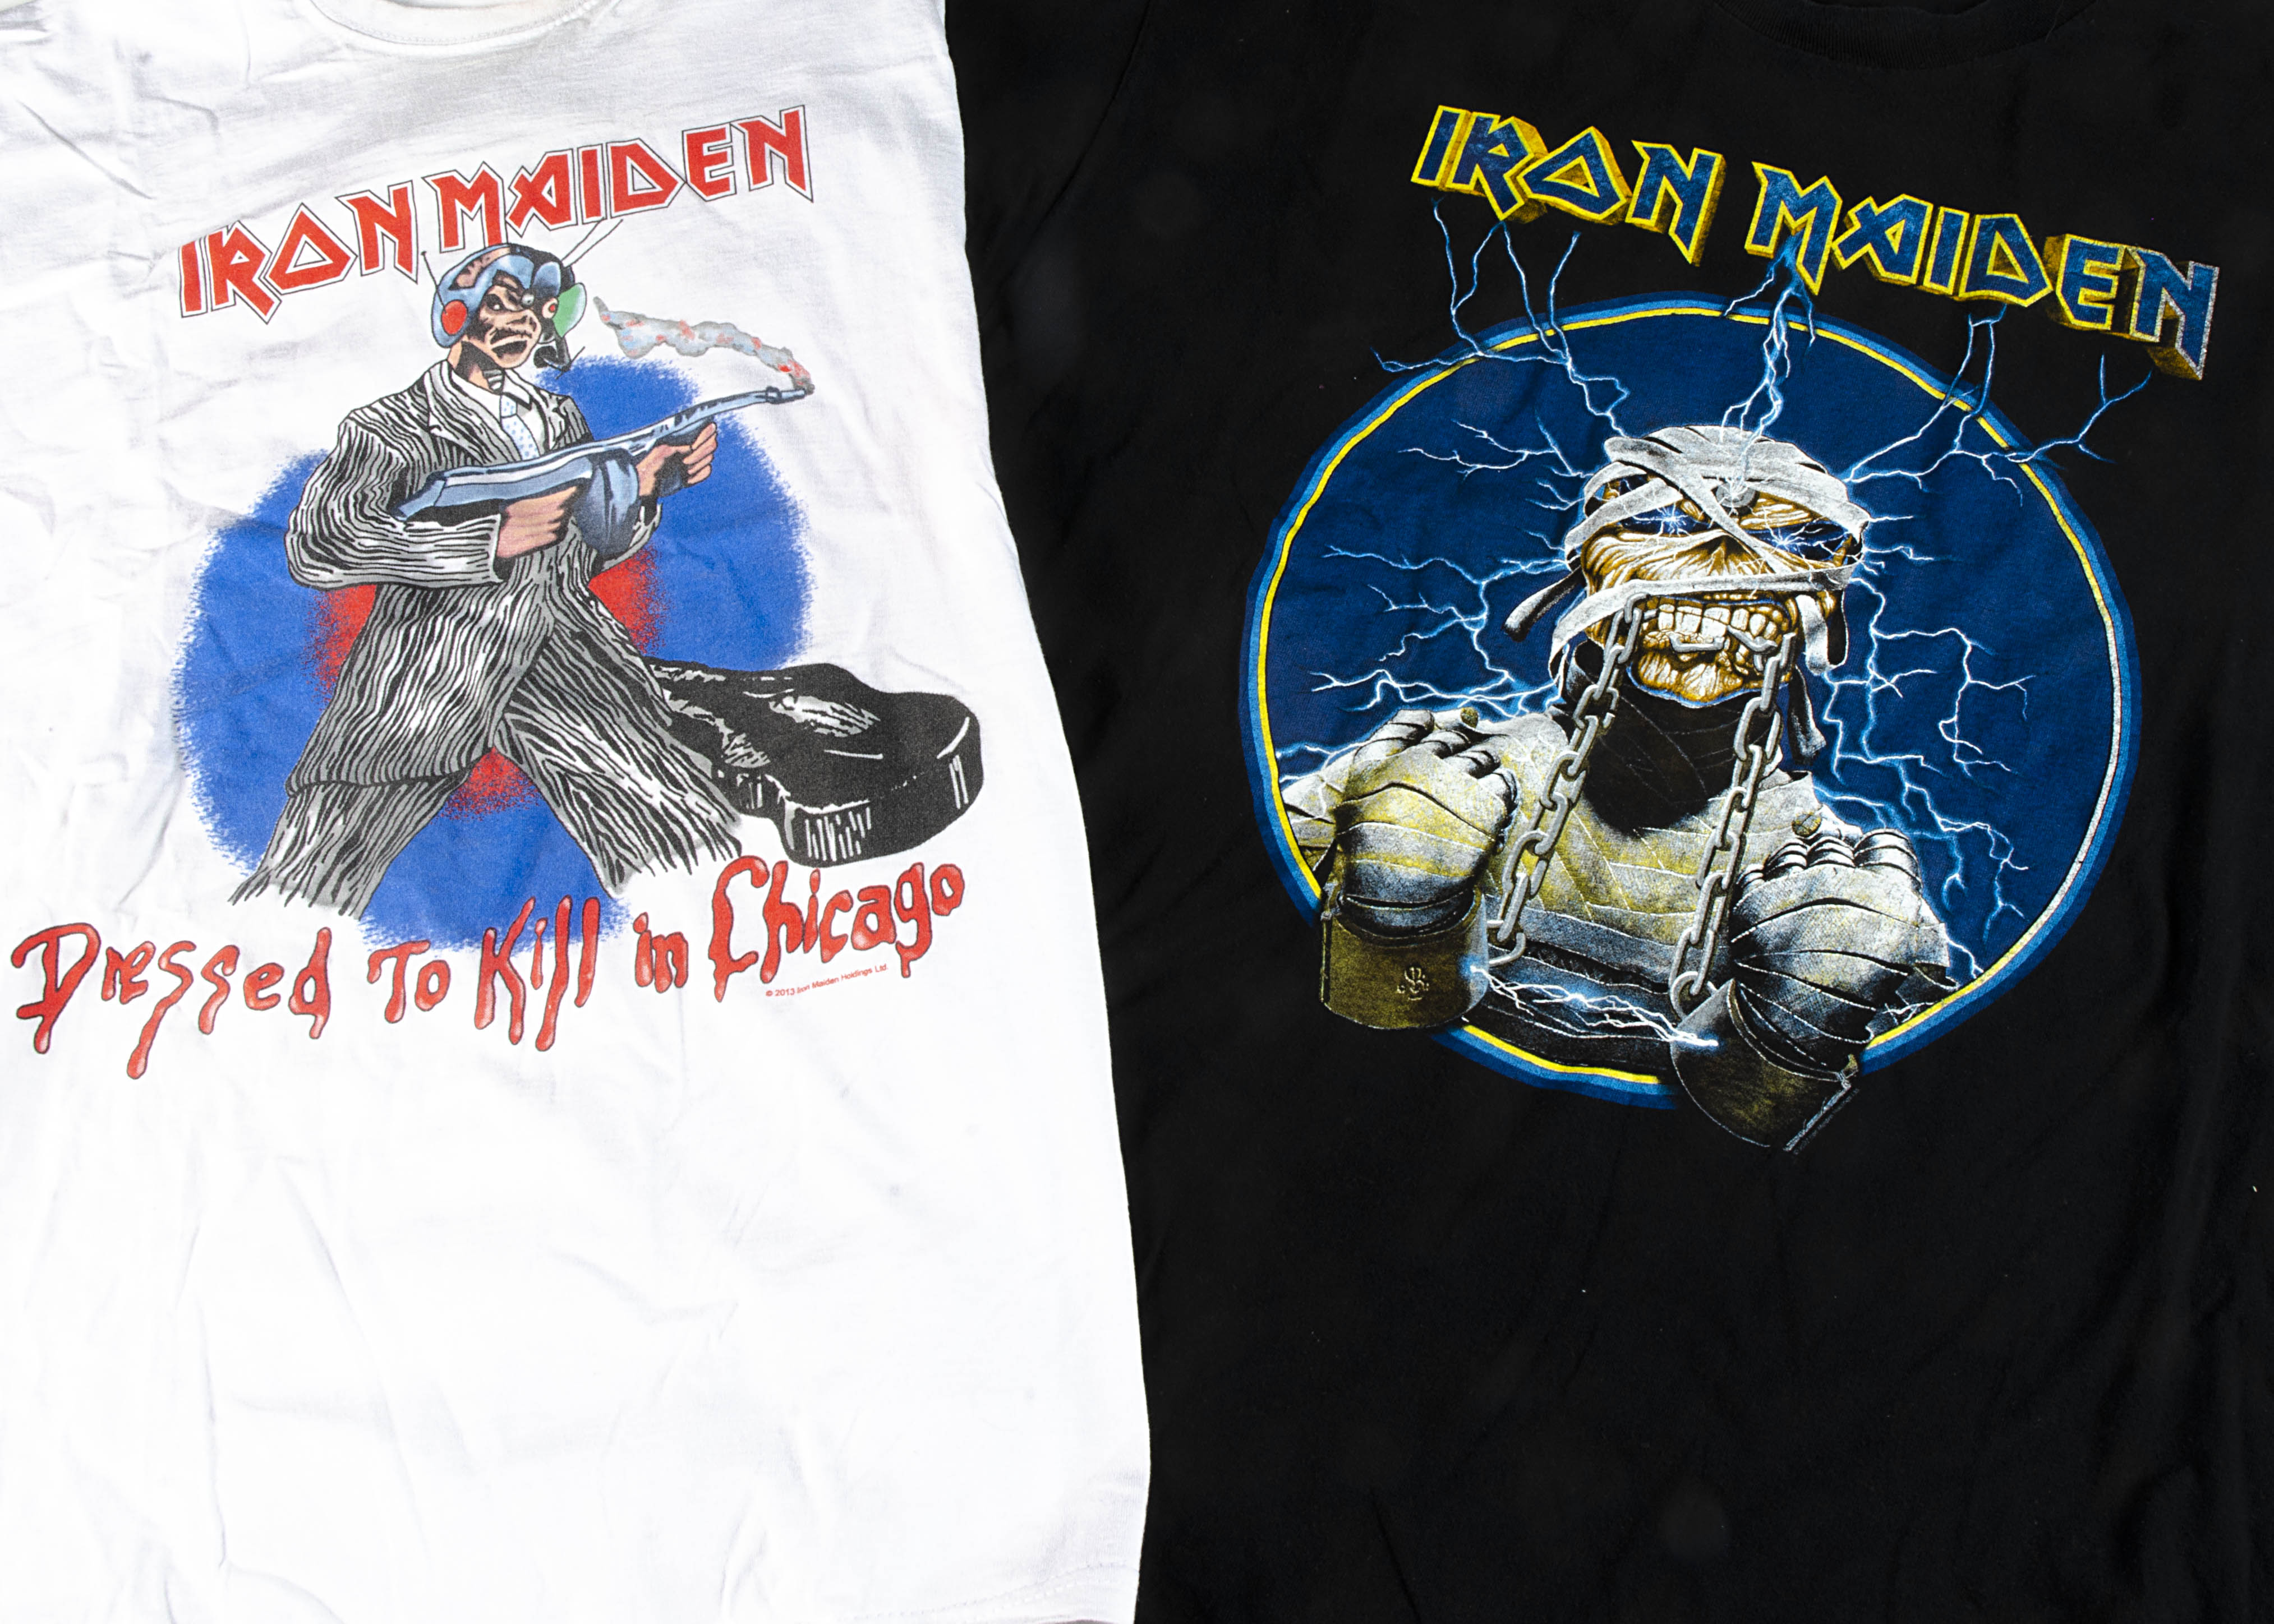 Iron Maiden 'T' Shirts, five Iron Maiden 'T' shirts - 2 X dressed to Kill in Chicago XL & M (used - Image 2 of 2